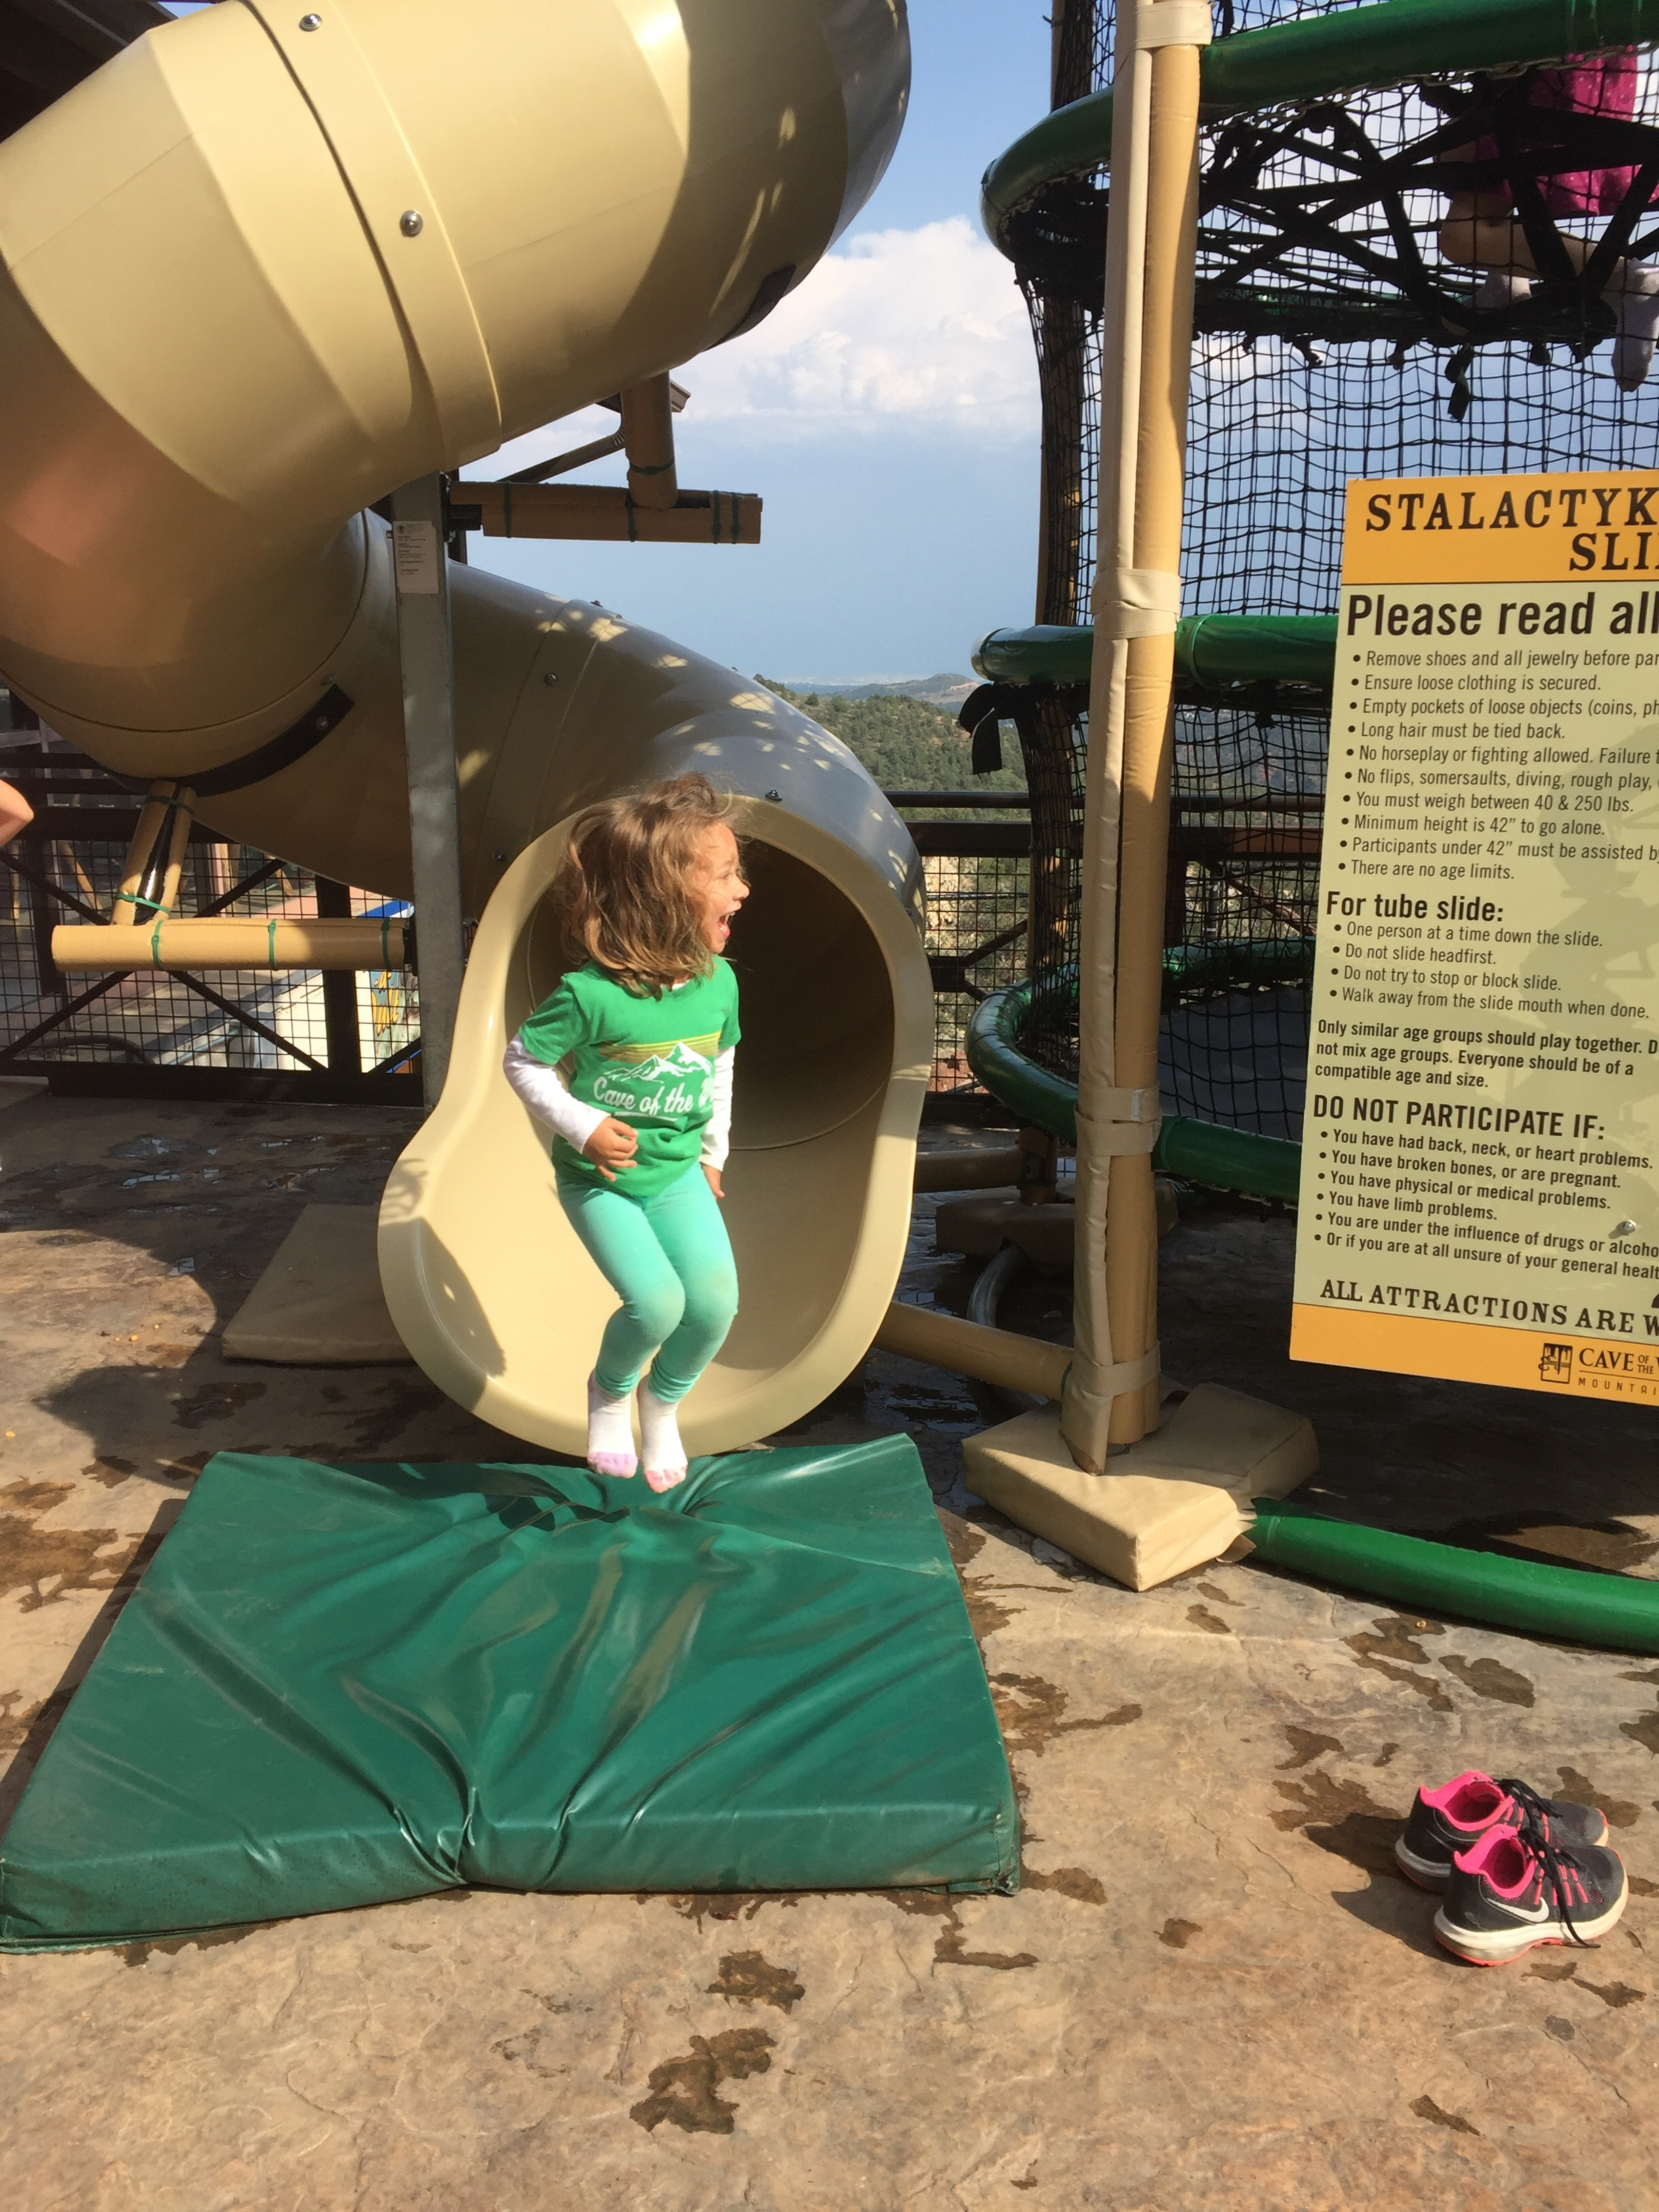 Maia was SO proud when she finally climbed to the top of this net climber and could slide down the slide!